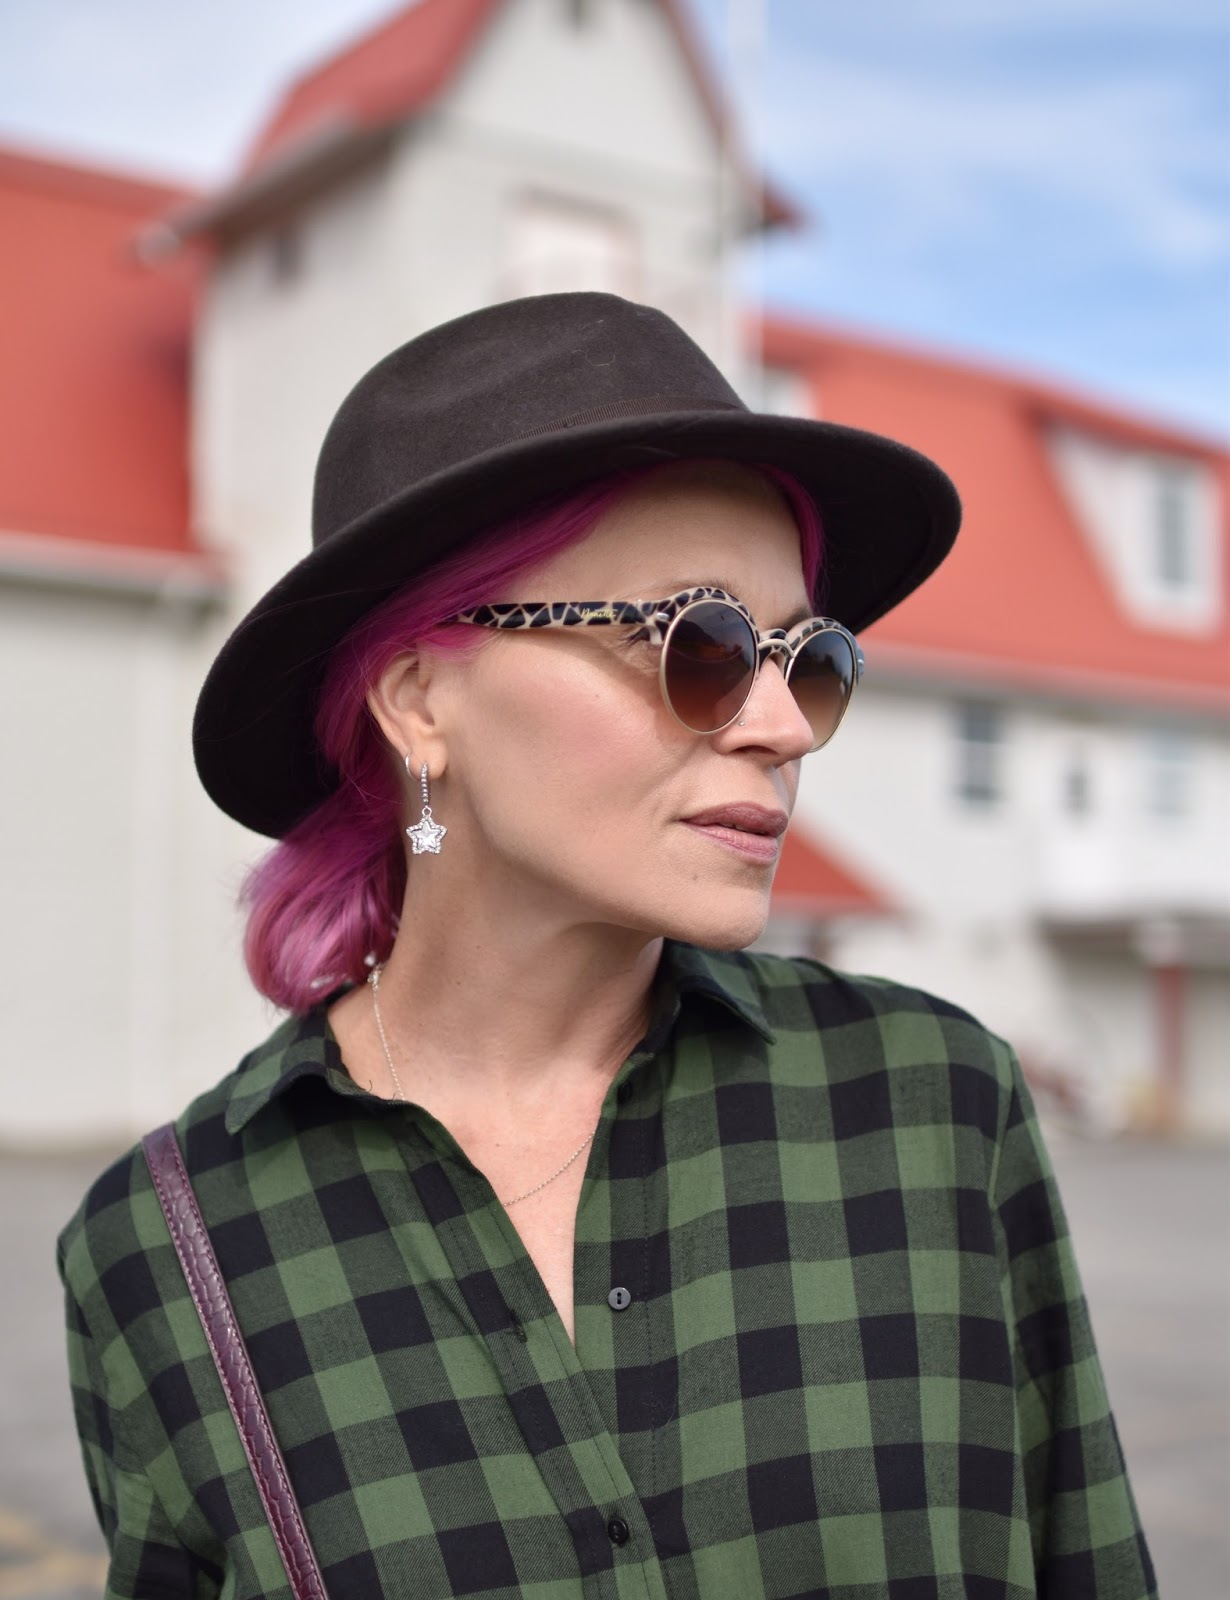 Outfit inspiration - plaid flannel shirtdress, felt fedora, animal-patterned sunglasses, fuchsia hair